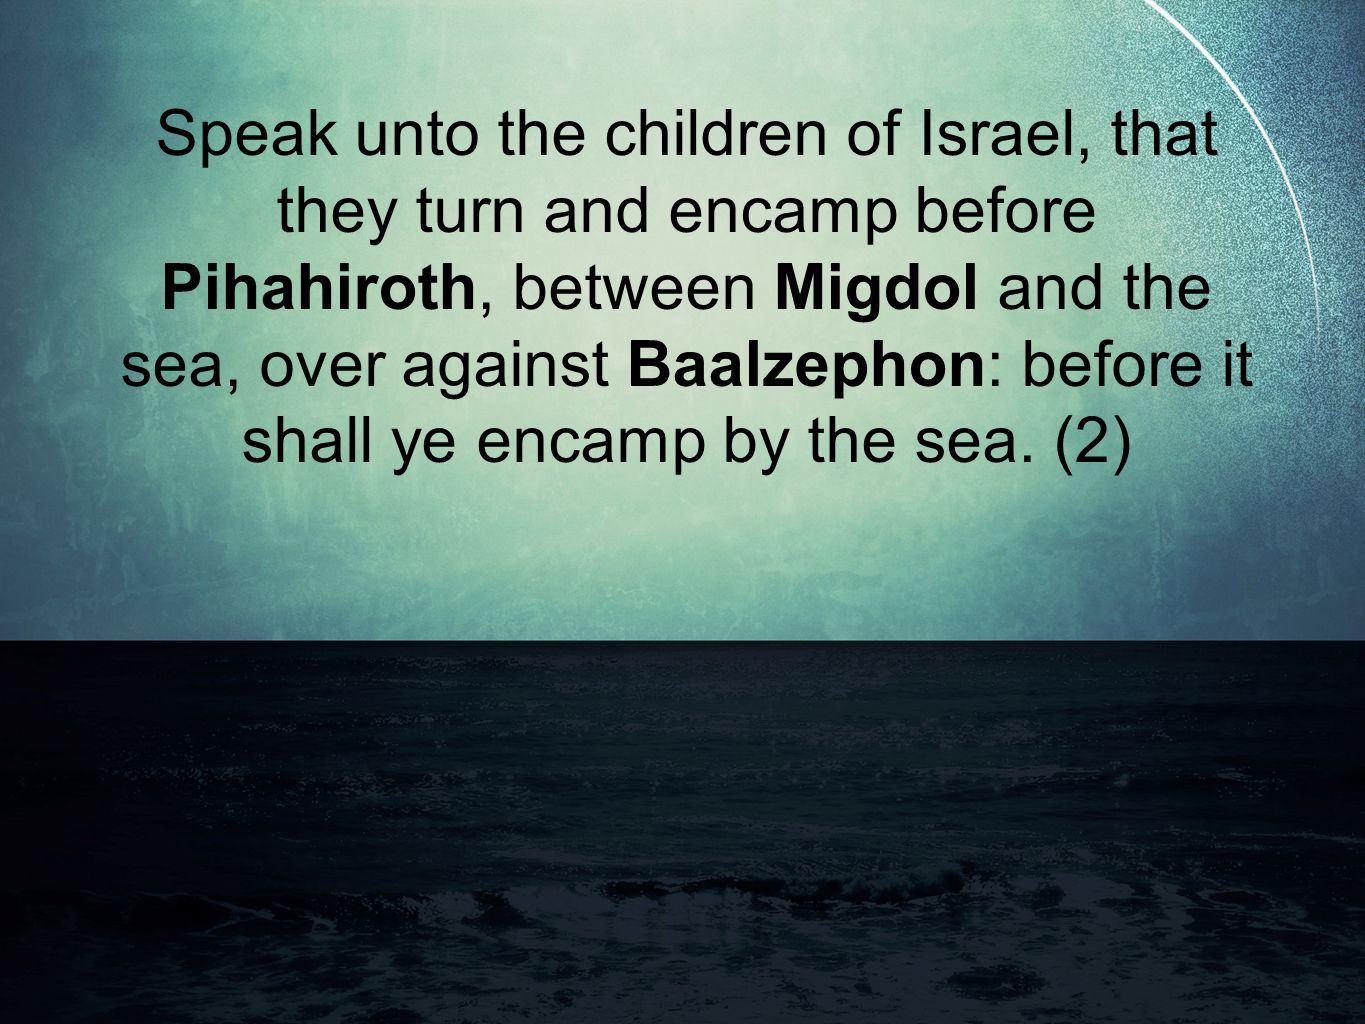 Speak unto the children of Israel, that they turn and encamp before Pihahiroth, between Migdol and the sea, over against Baalzephon: before it shall ye encamp by the sea.